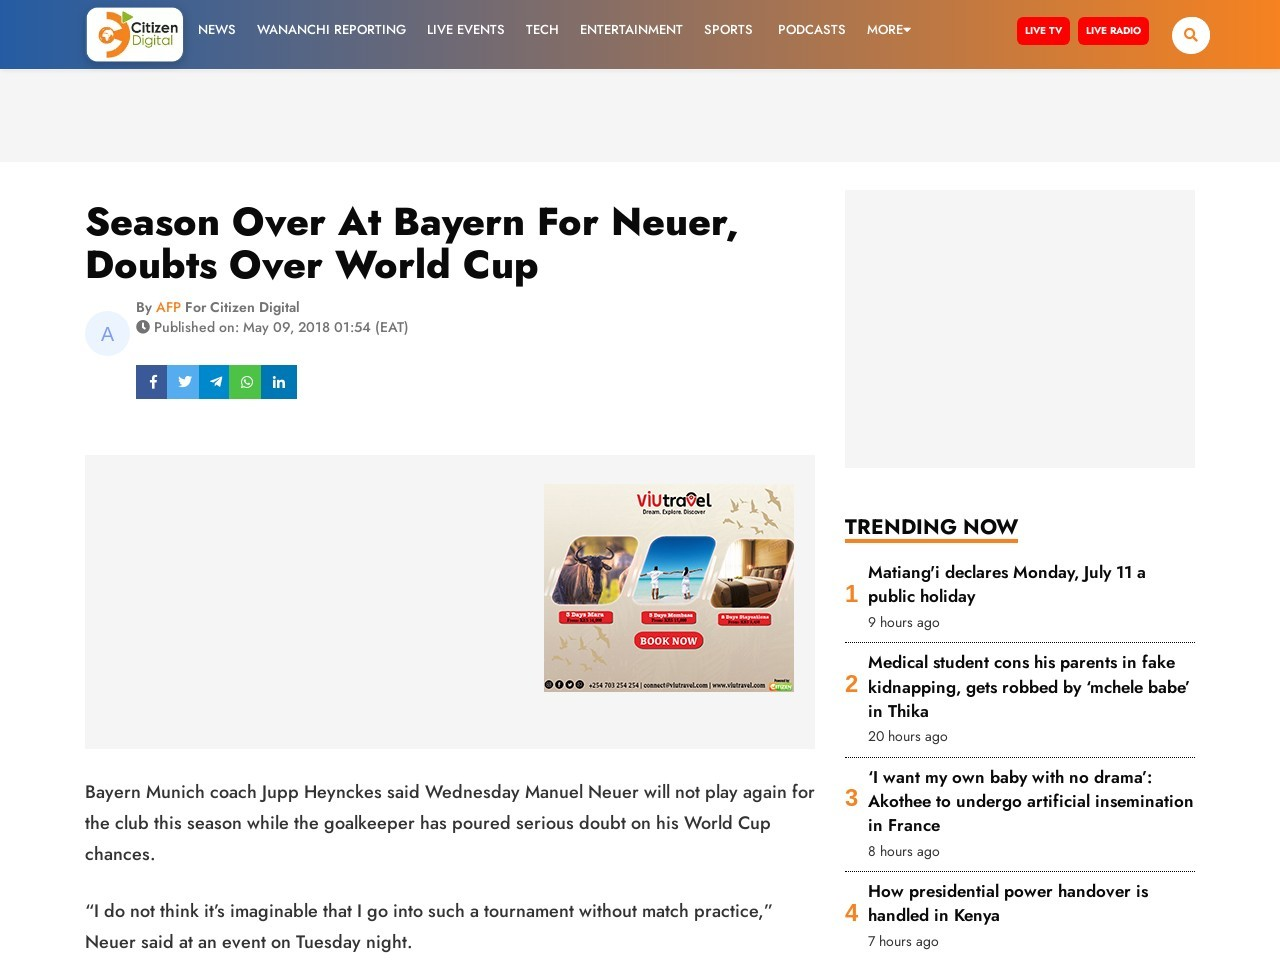 Season over at Bayern for Neuer, doubts over World Cup